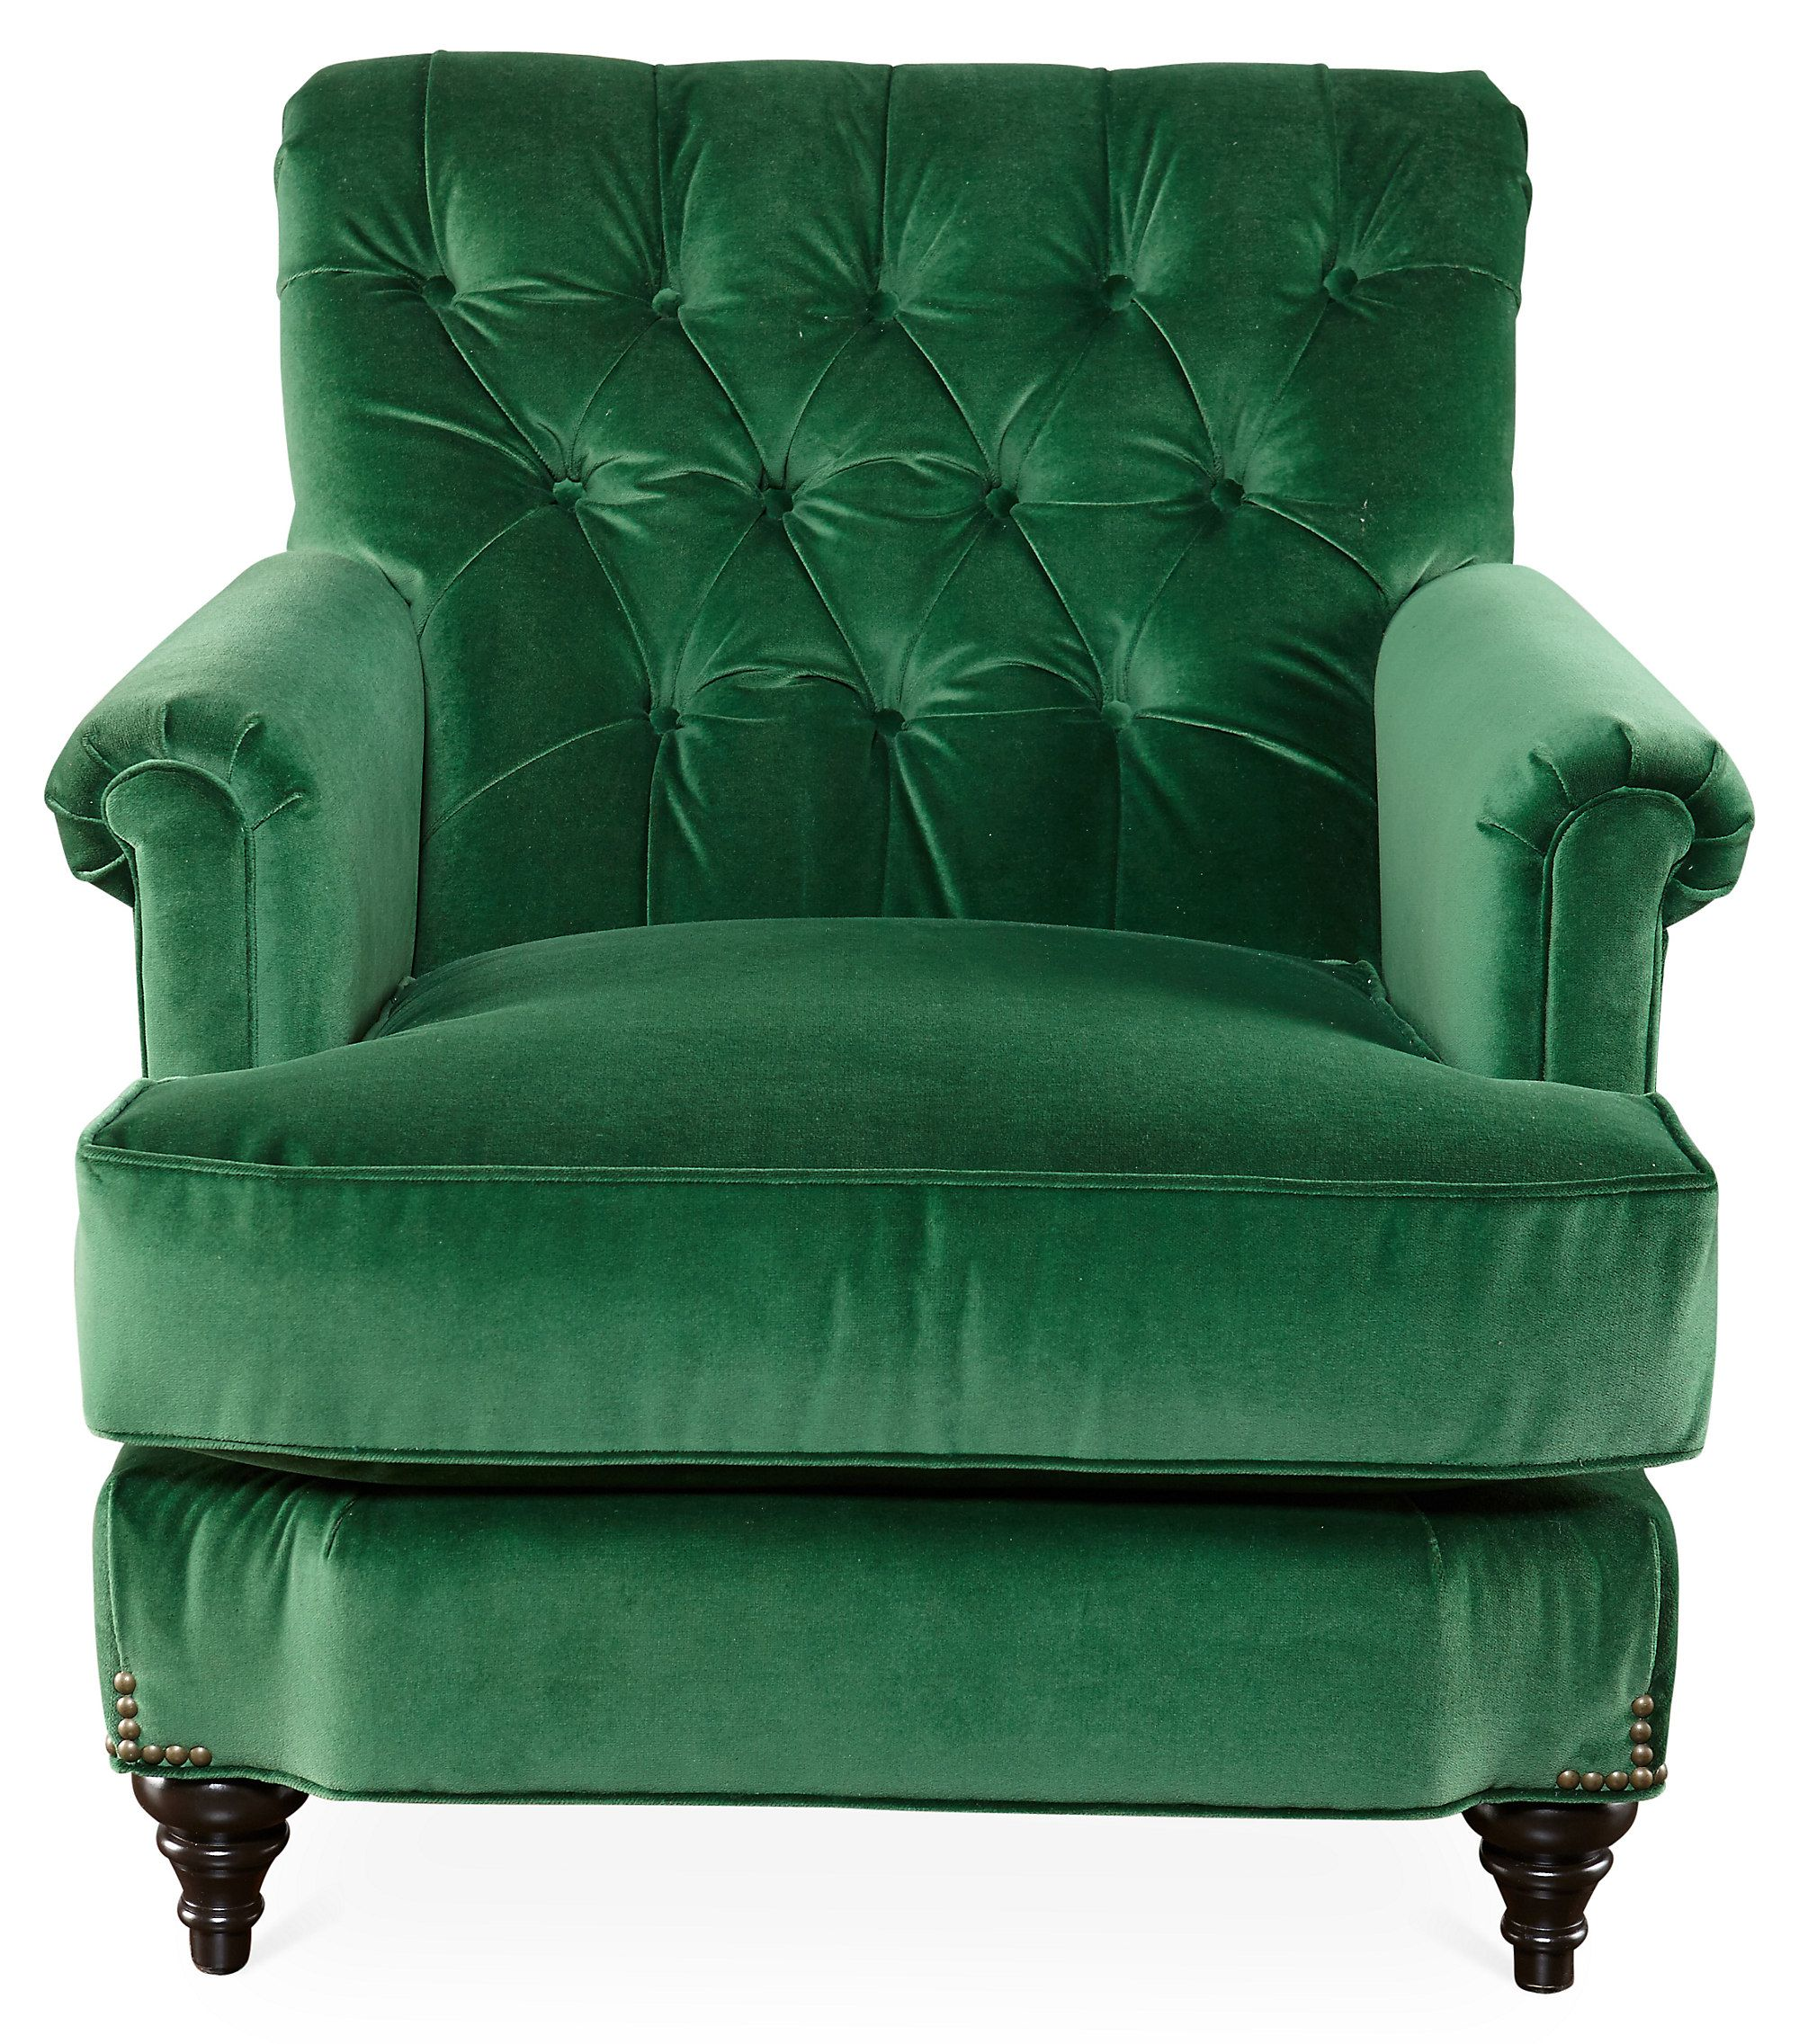 Green Velvet Dining Chairs Acton Tufted Chair Emerald Green Velvet One Kings Lane